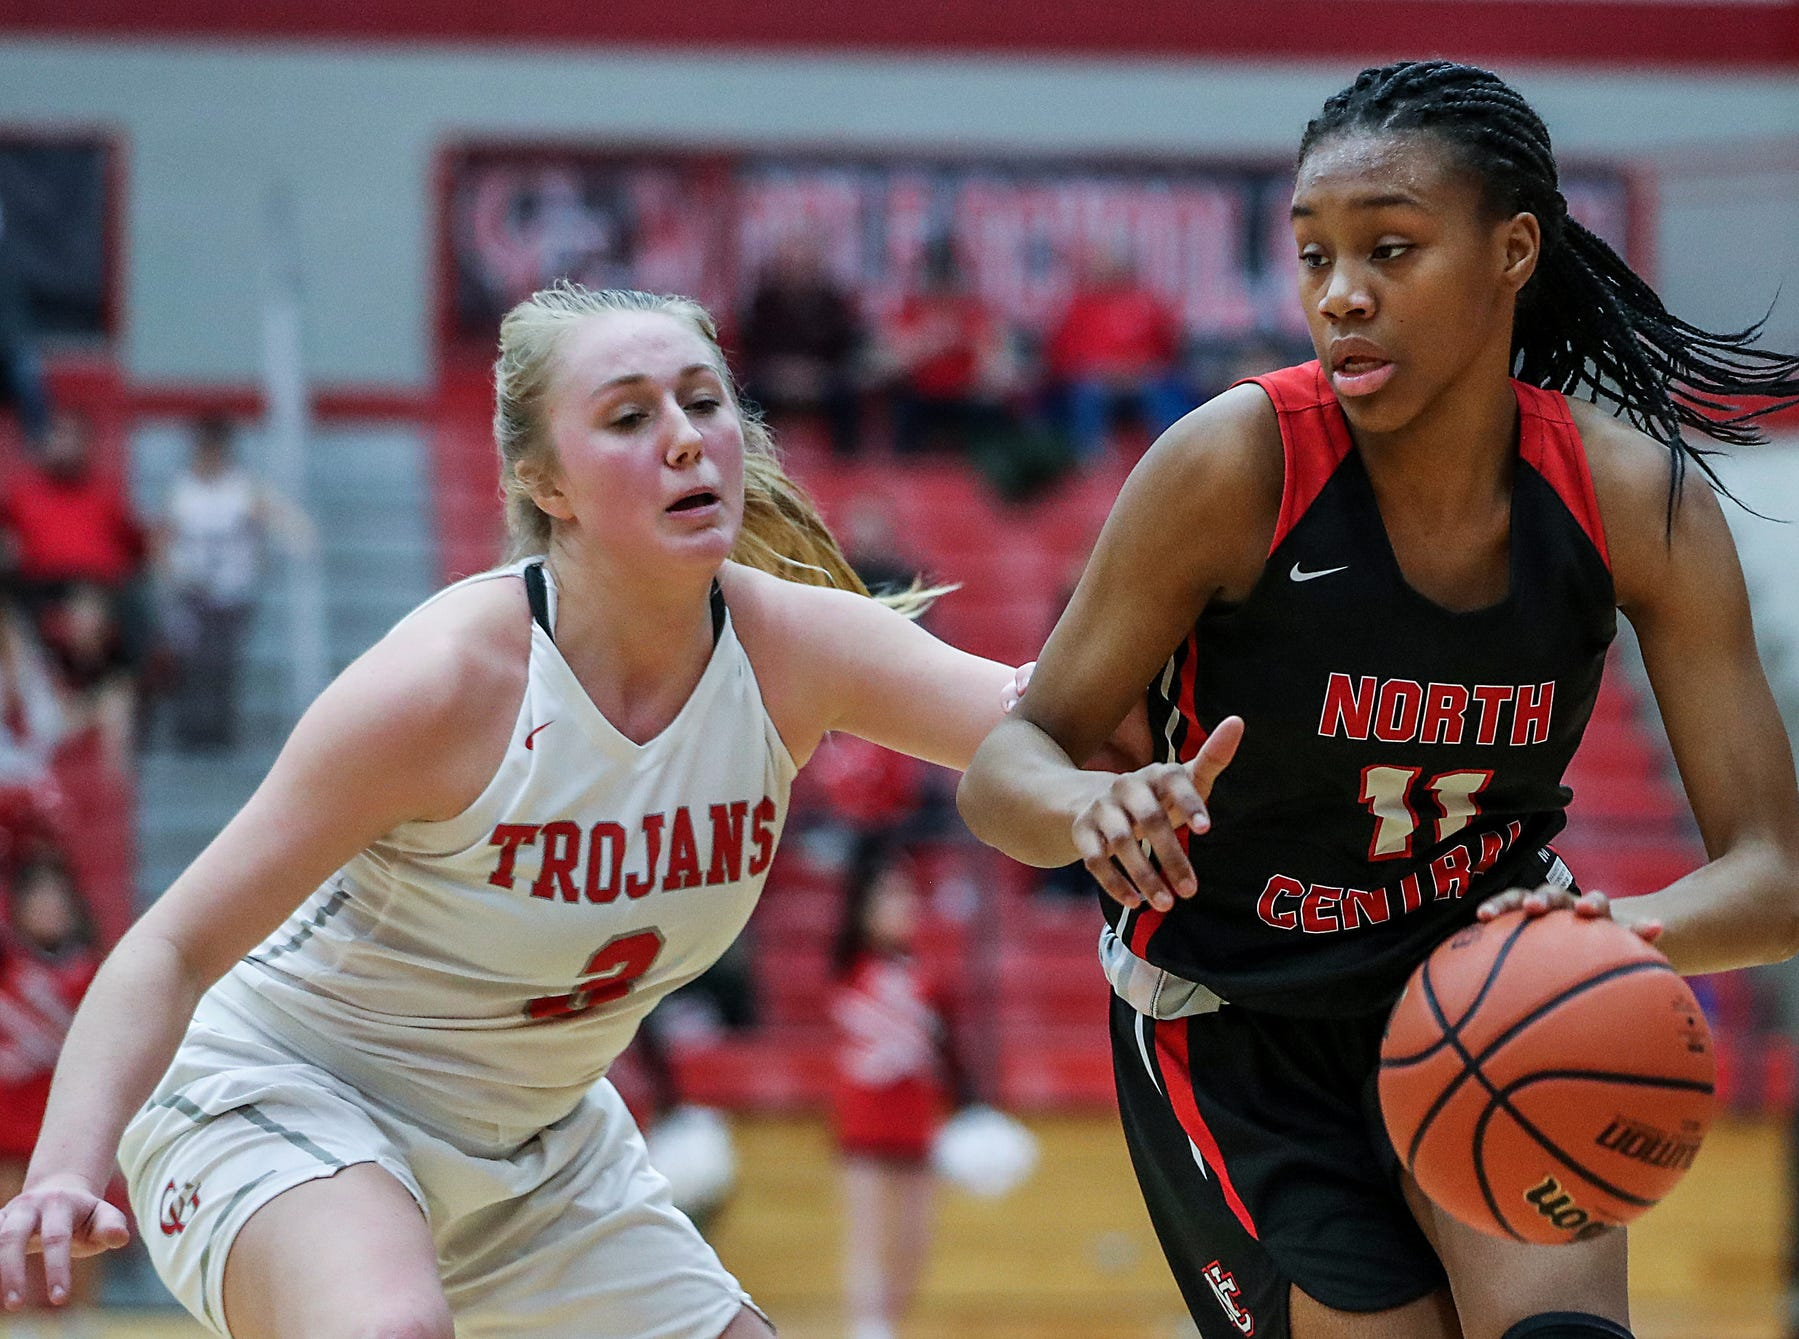 Center Grove Trojans guard Ashley Eck (3) guards North Central Panthers guard Toree Jackson (11) in the second half of the game at Center Grove High School in Greenwood, Ind., Thursday, Jan. 10, 2019. Center Grove defeated North Central, 51-44.